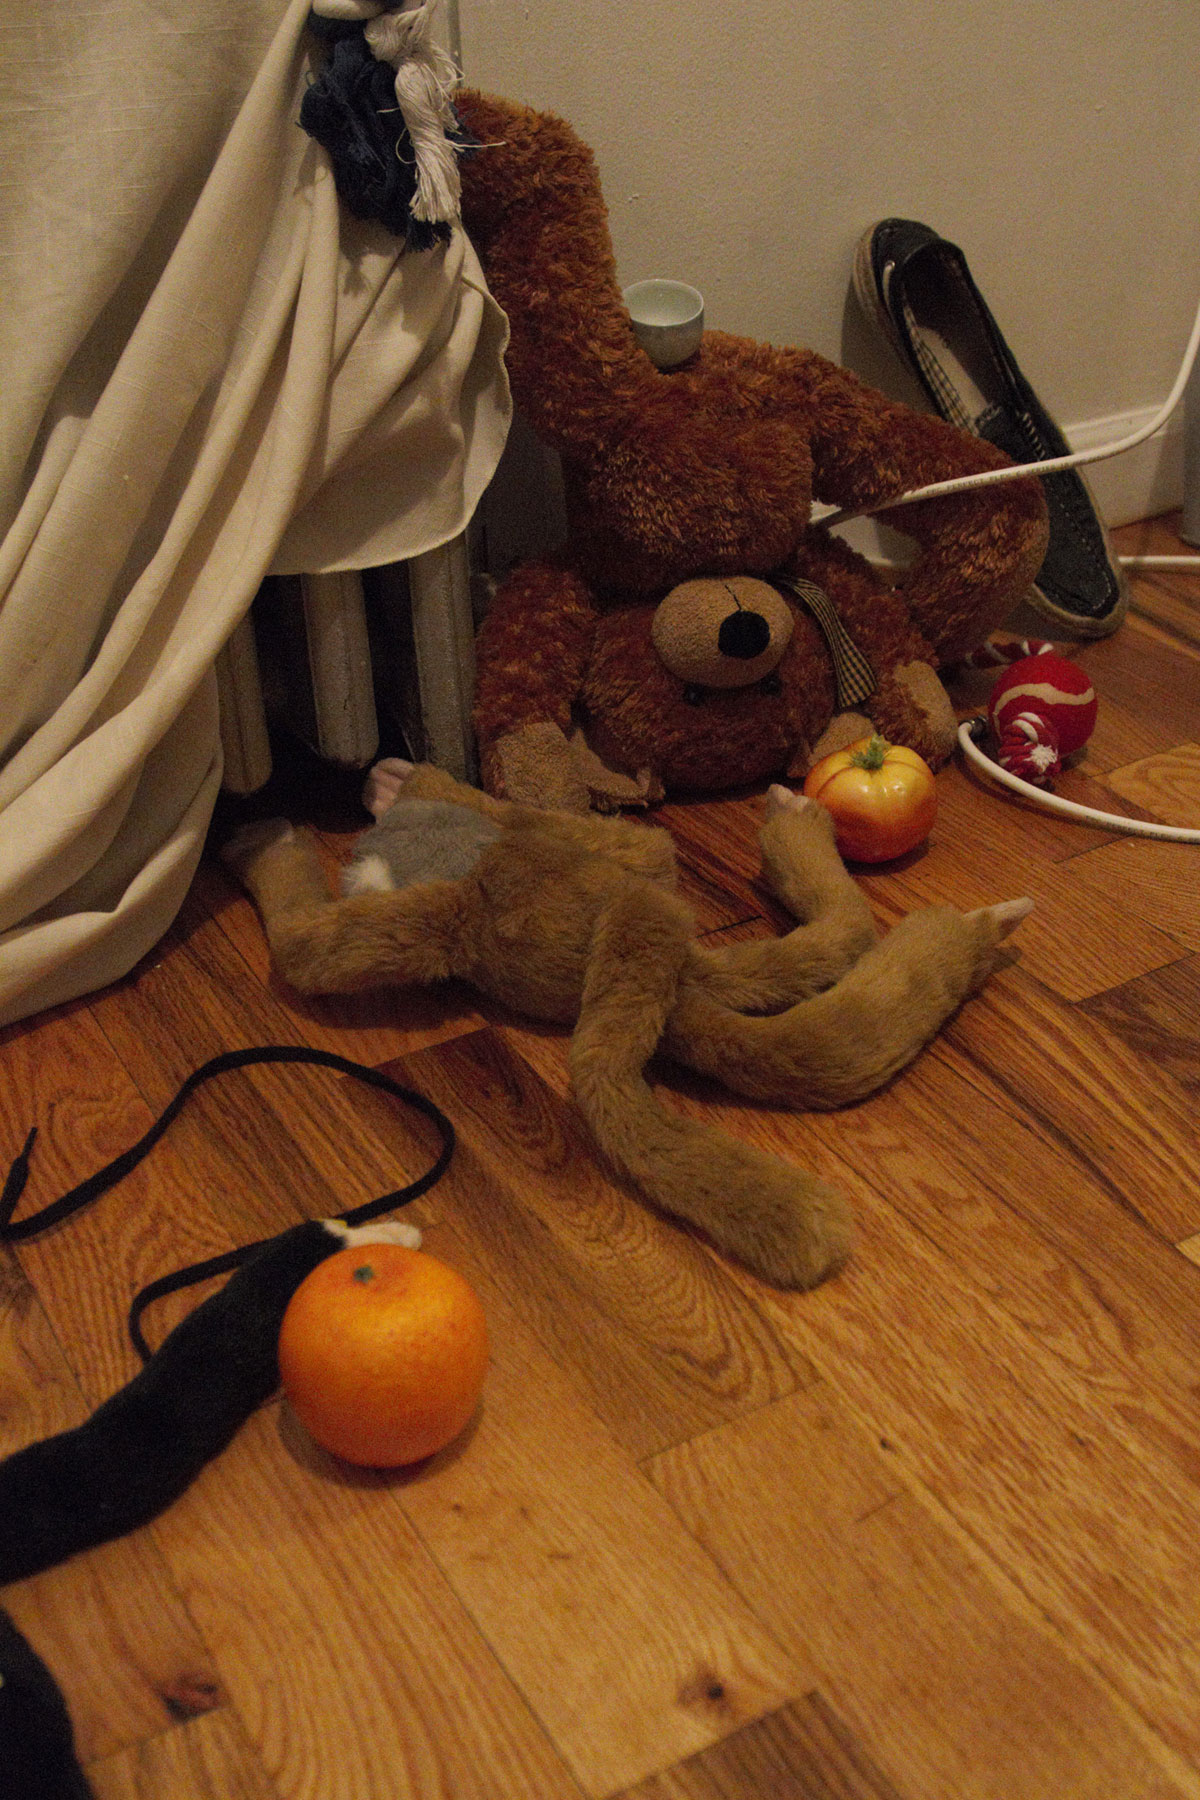 teddy bear and stuffed monkey on hard wood for with shoe and plastic fruit and dog chew toy